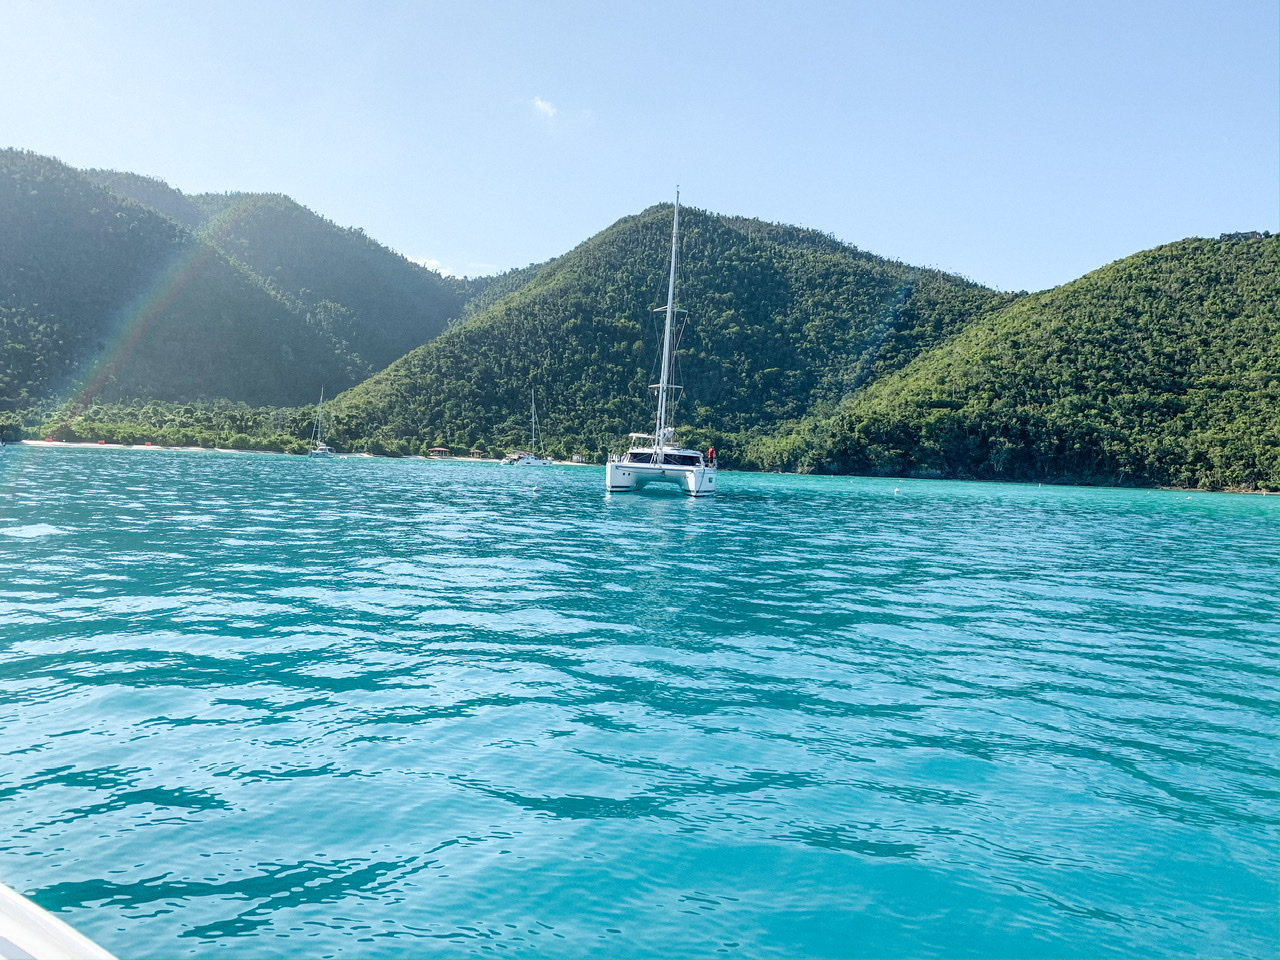 Beautiful island views of St. John; another gorgeous US Virgin Island on our charter boat day